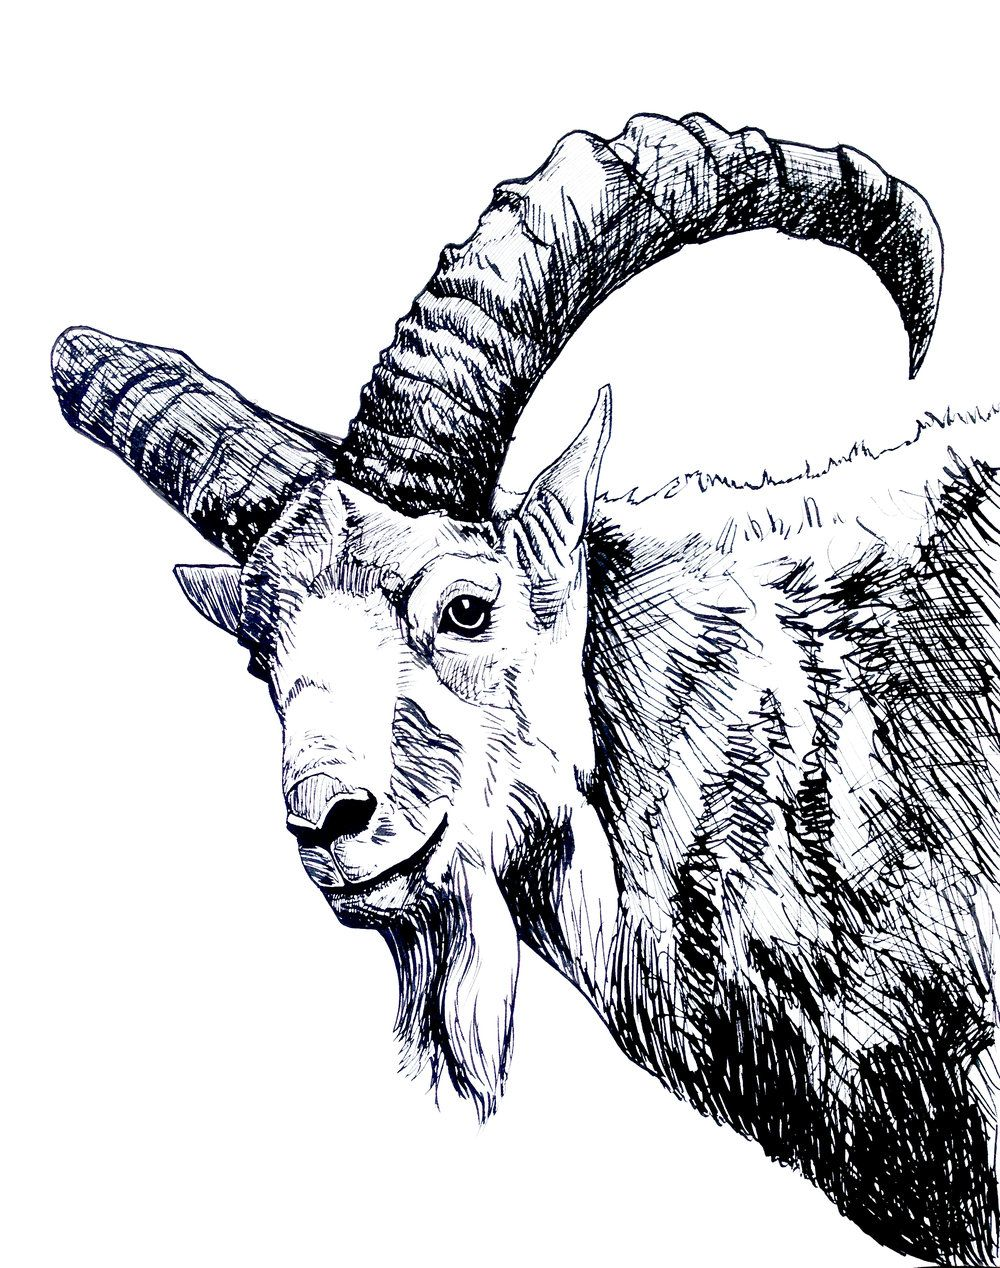 Ibex mountain goat ink drawing by ciara barsotti created